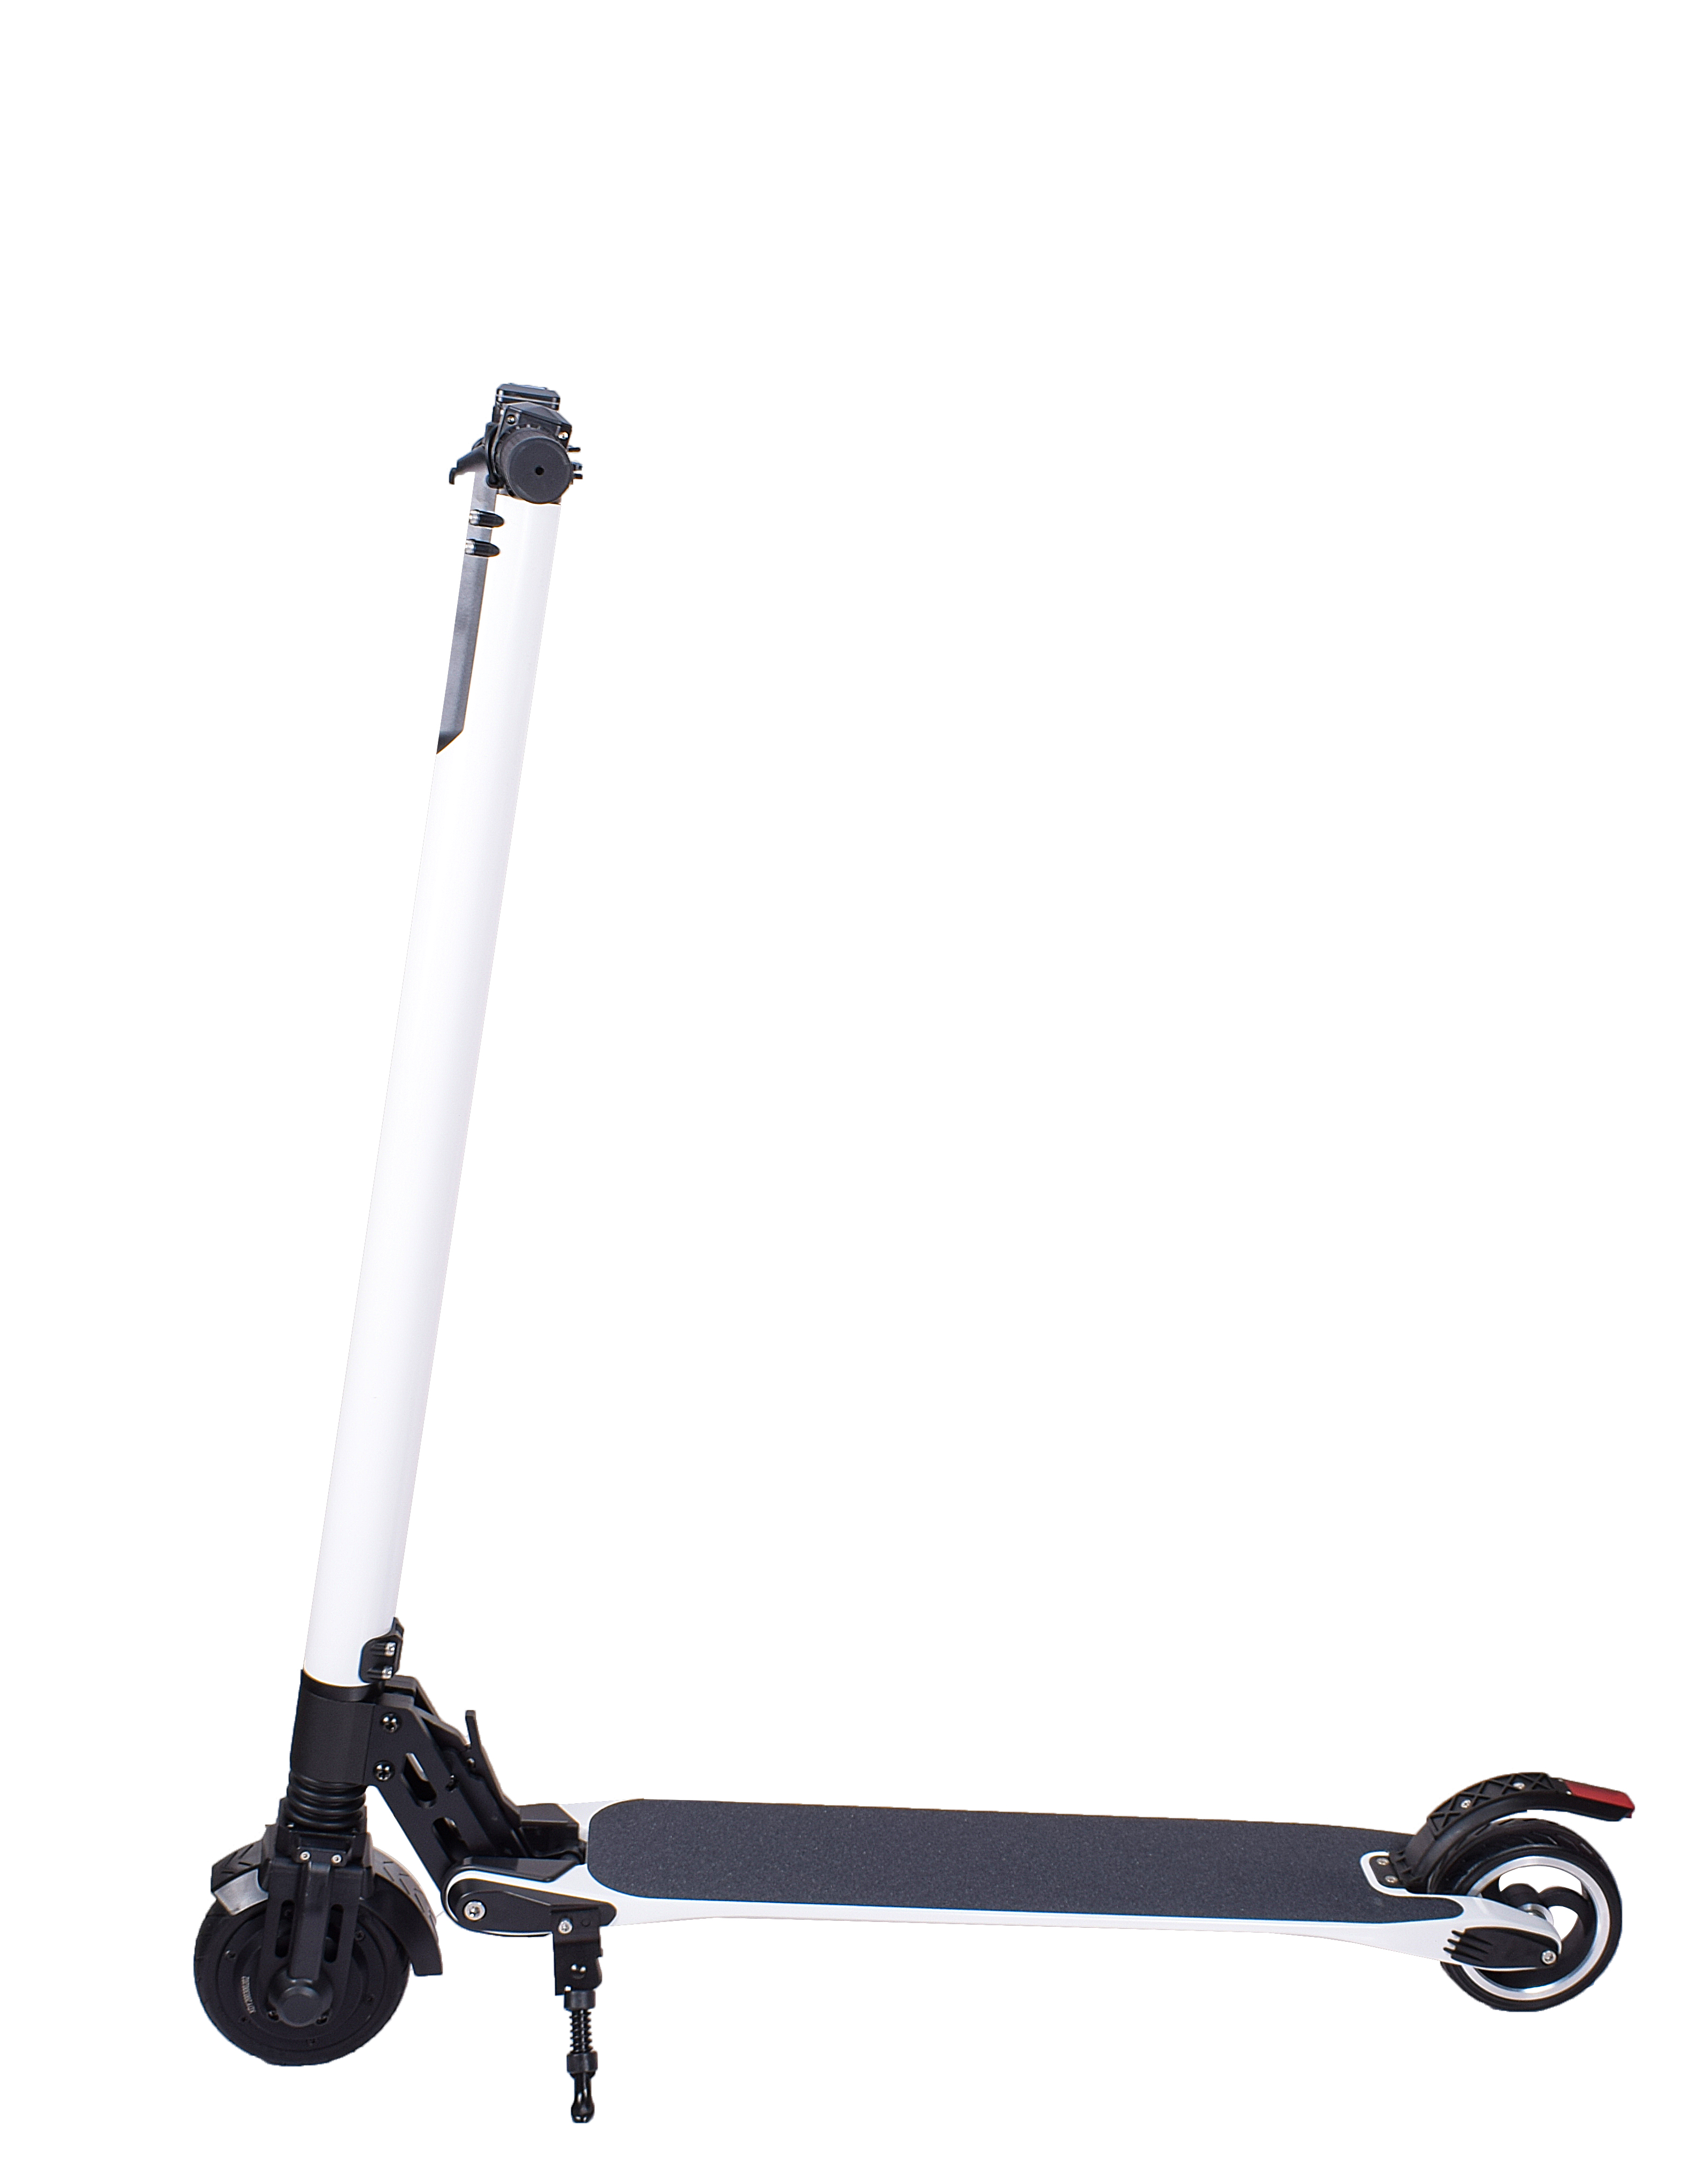 Electric-Scooter Mini K2-015 Lithium-Battery Ultra-Light Can-Be-Used-For Portable Can-Be-Used-For